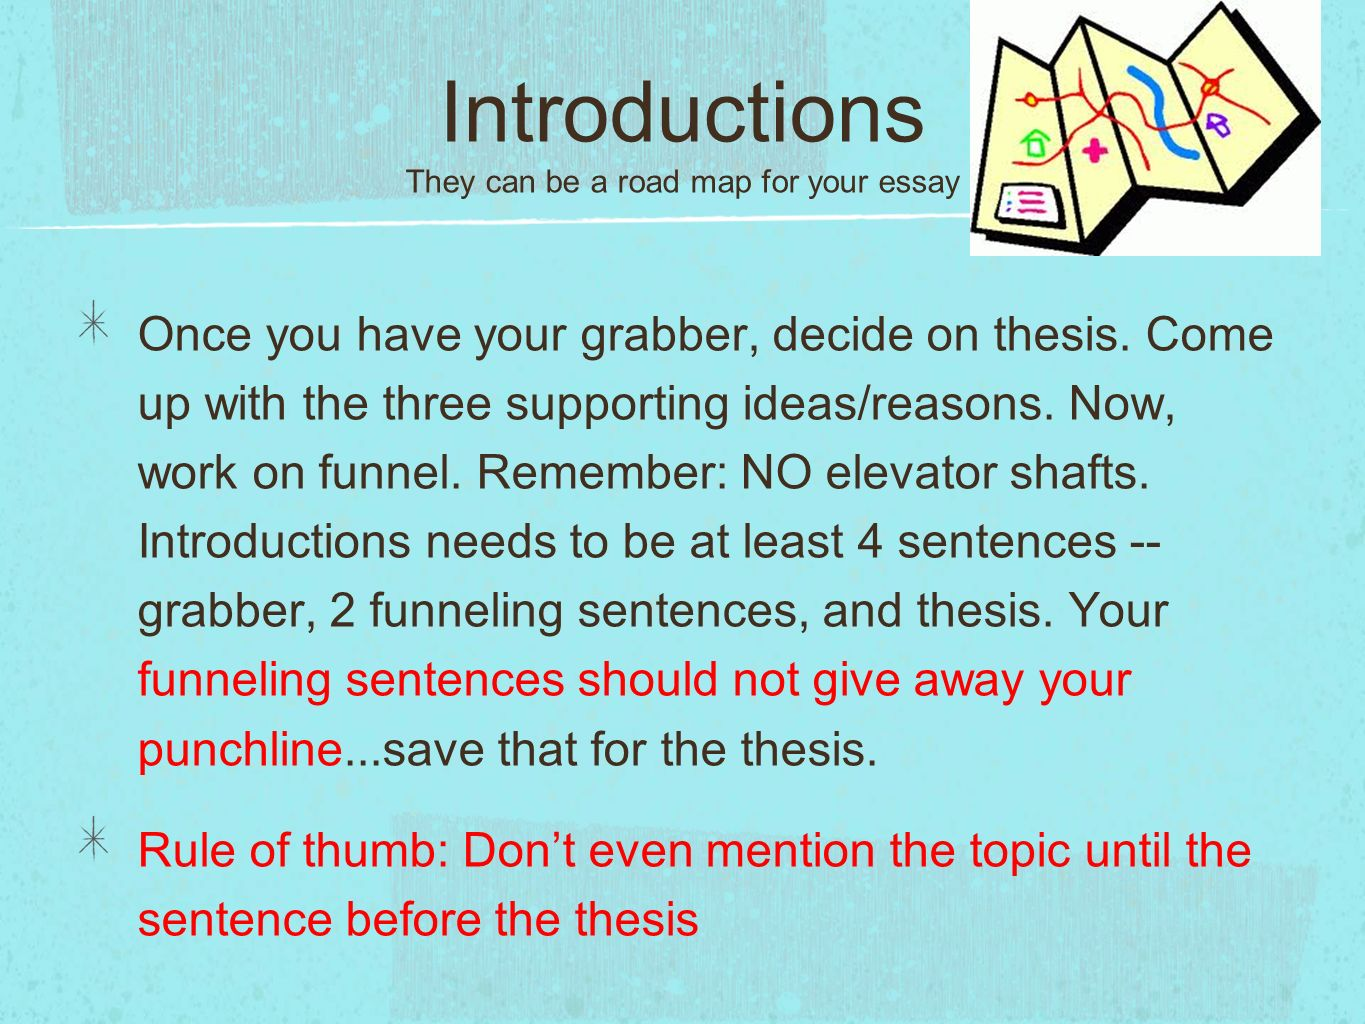 Your Thesis Plan - A Roadmap to Completing Your Research Degree